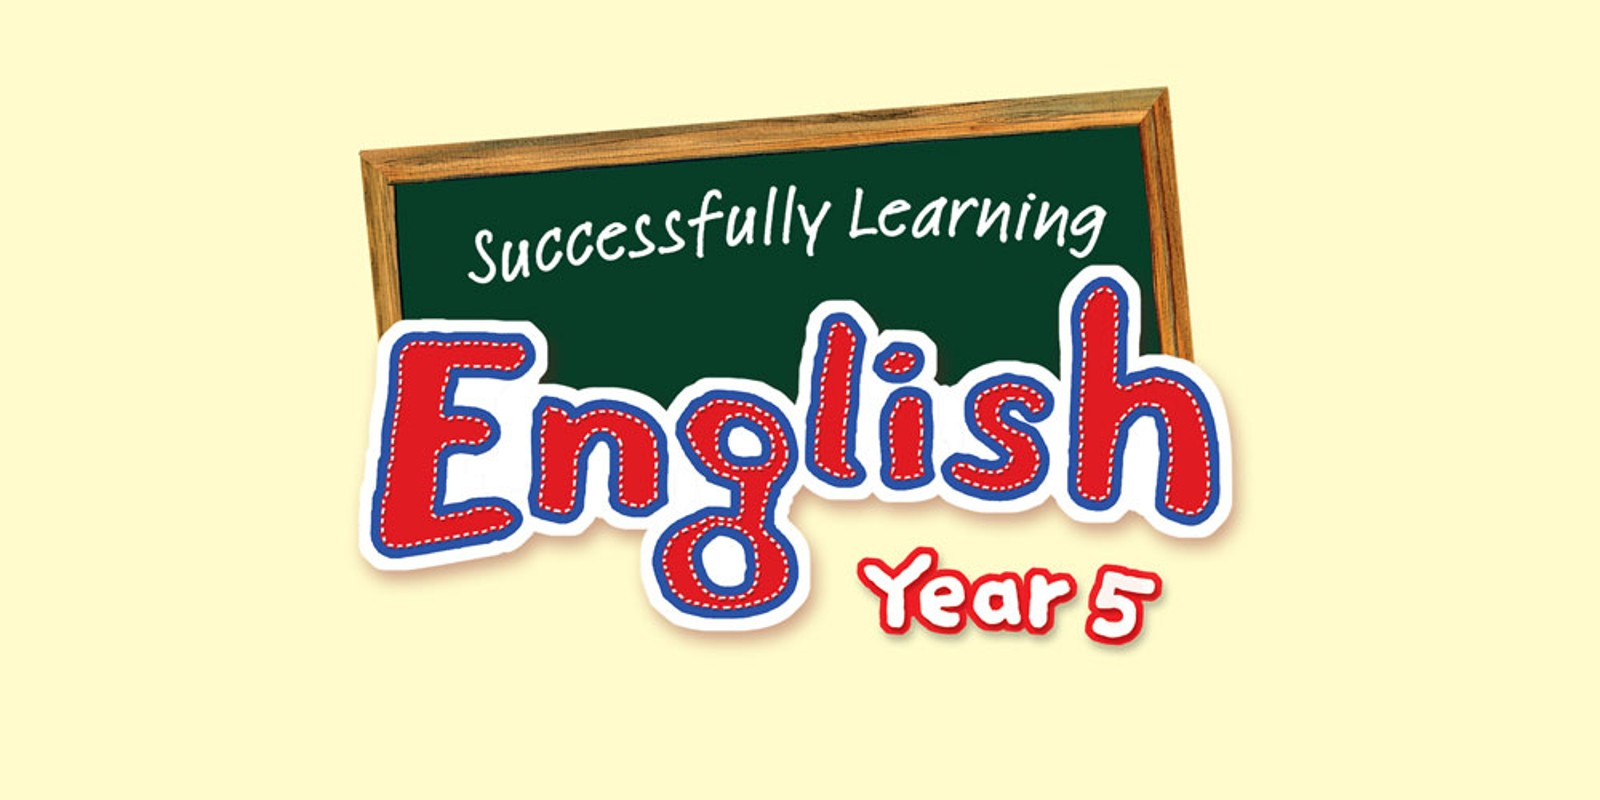 Successfully Learning English Year 5 WiiWare Games